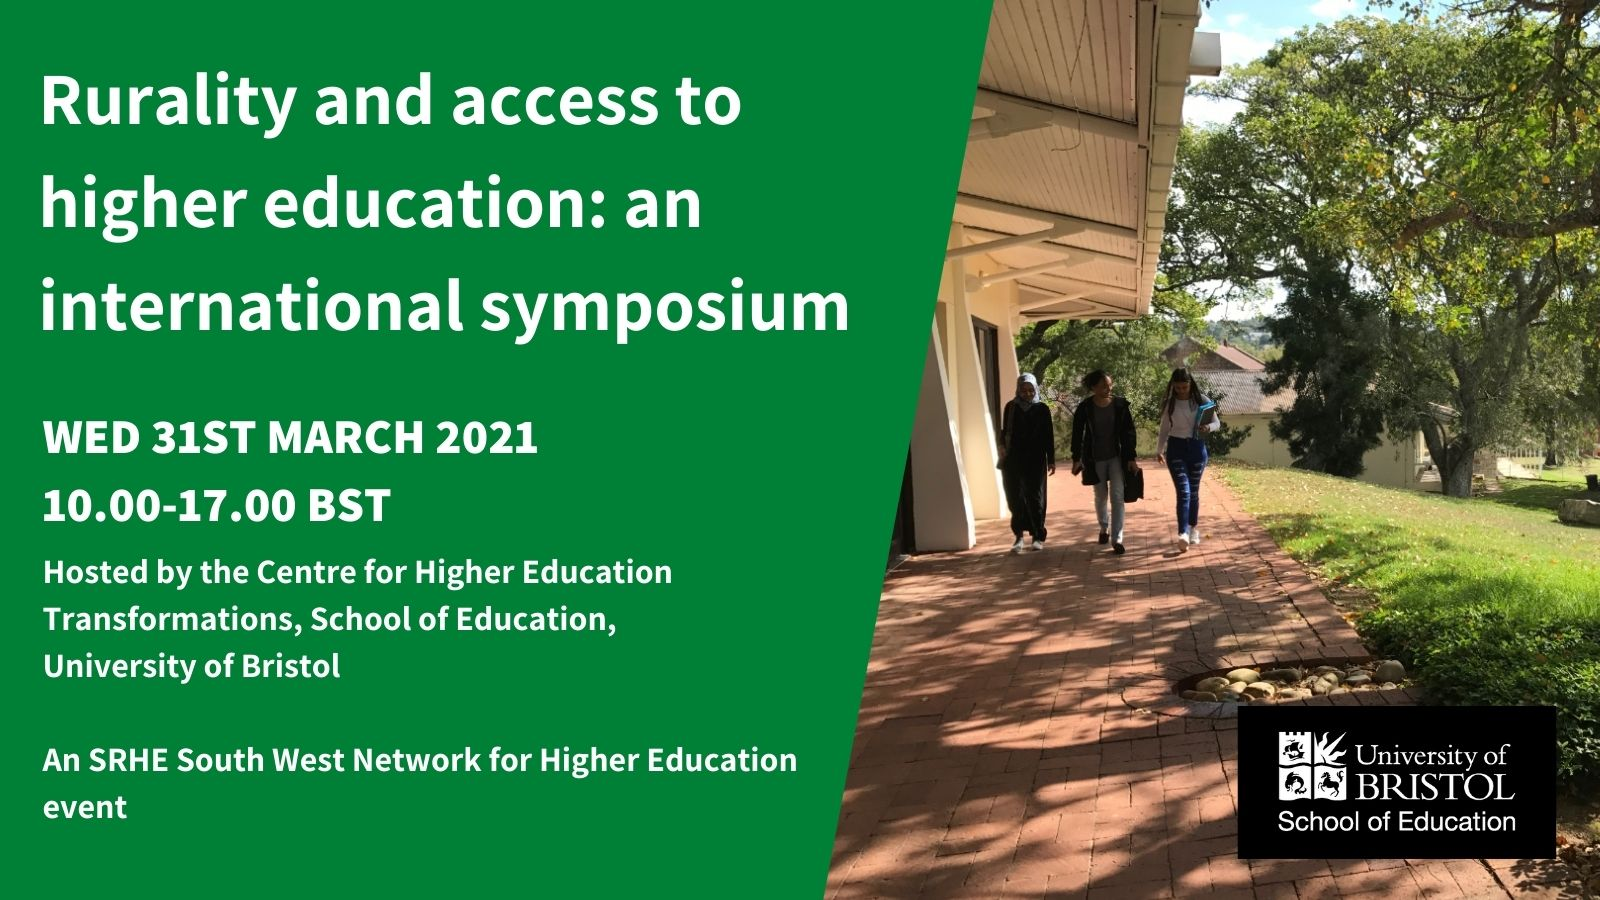 Rurality and access to higher education: an international symposium